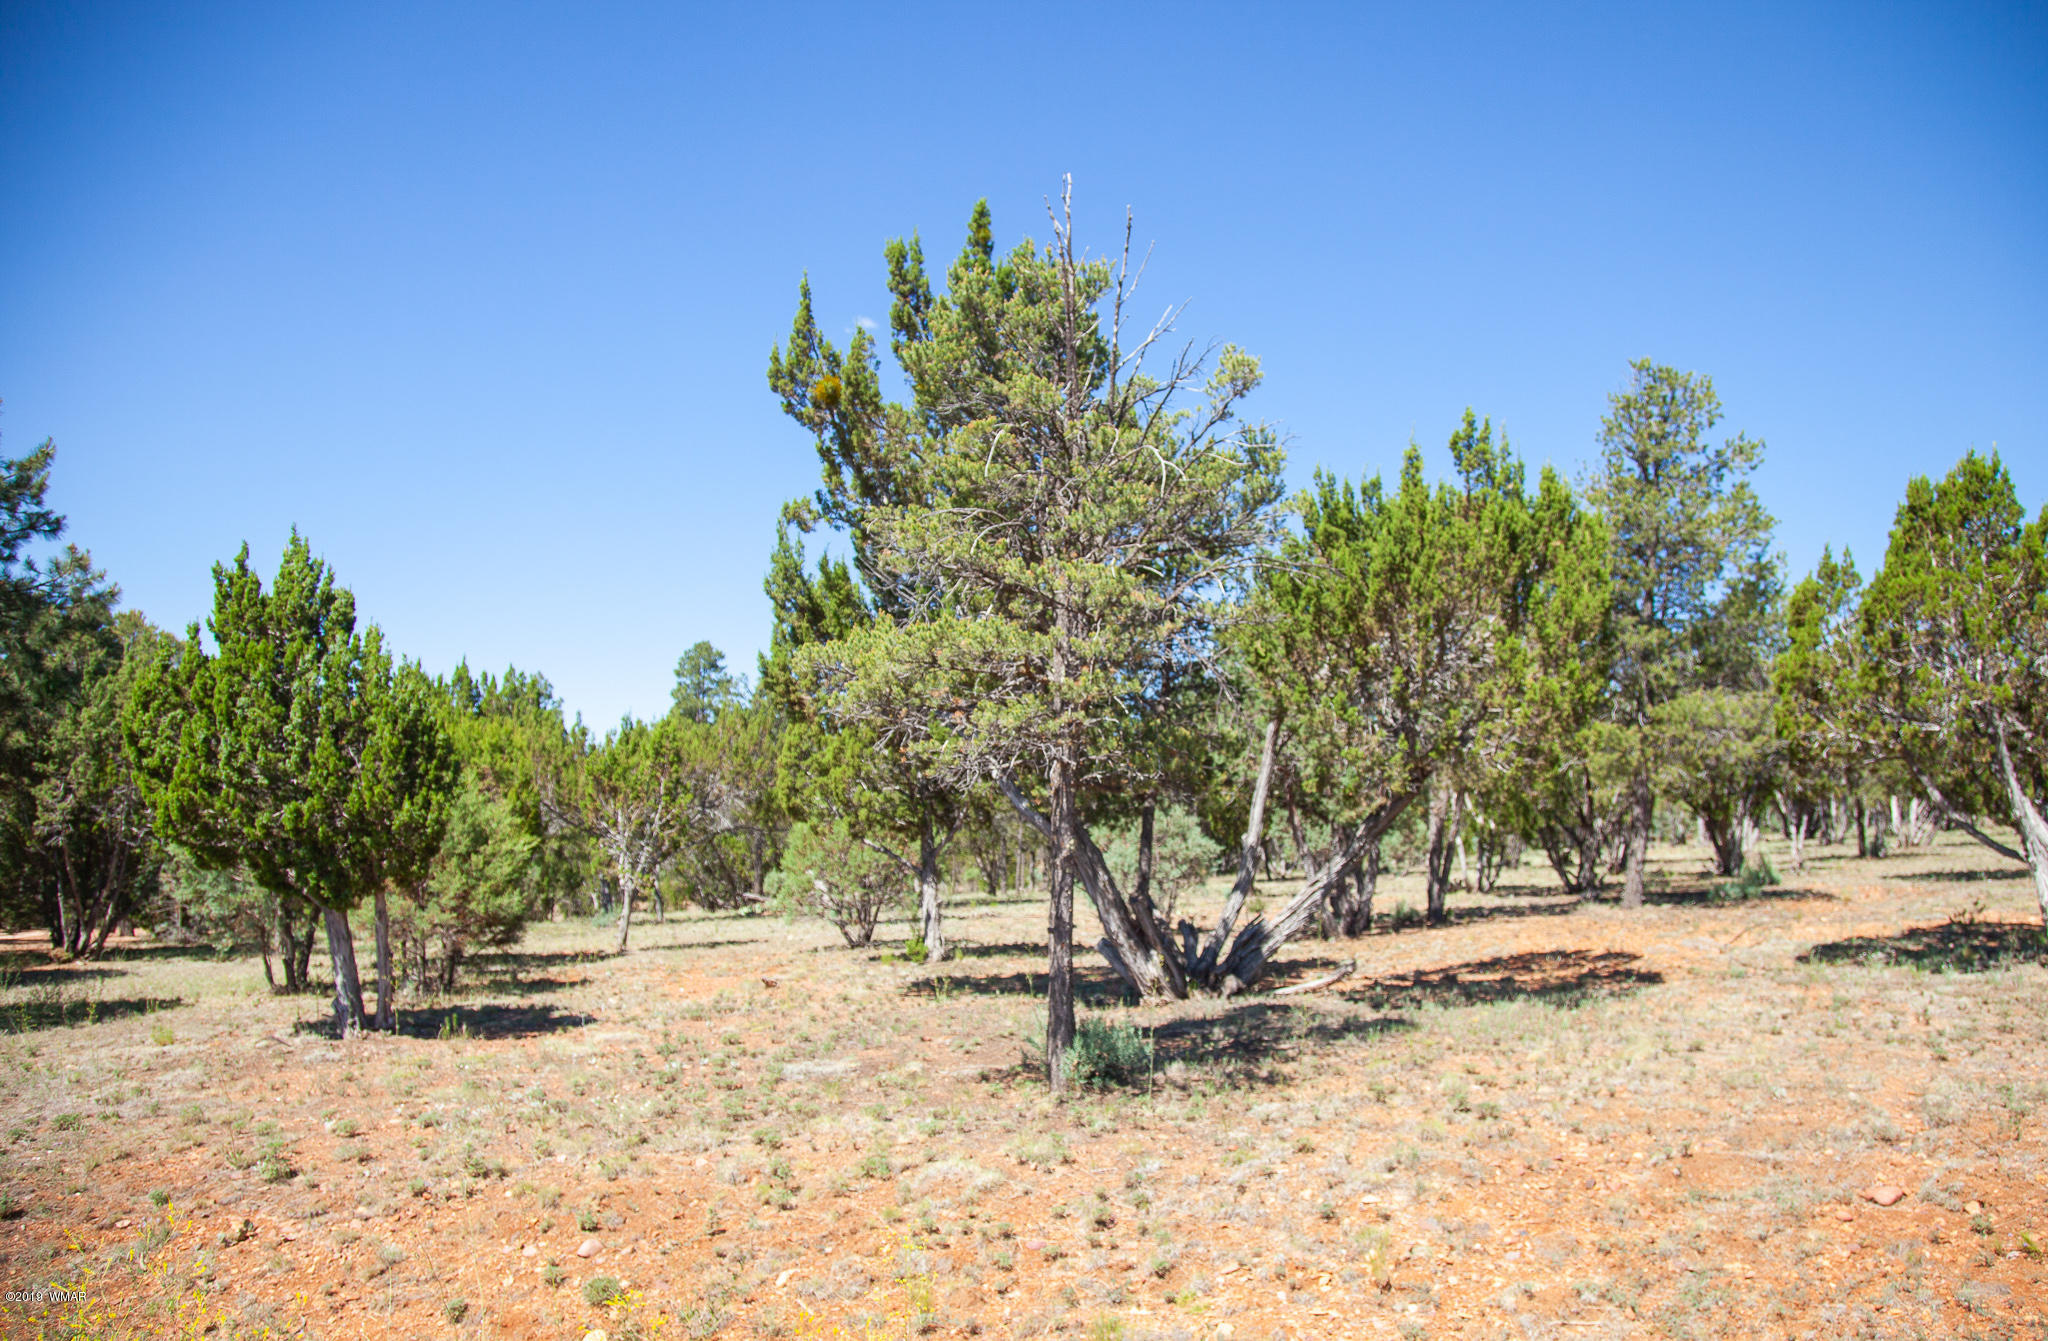 Looking for land to build a custom home? This 1.1-acre parcel located in Mogollon Estates w/ power and water. Ready to build, level lot, mix trees, in a cul-de-sac. Come enjoy all the community offers.  Hurry, Call today!